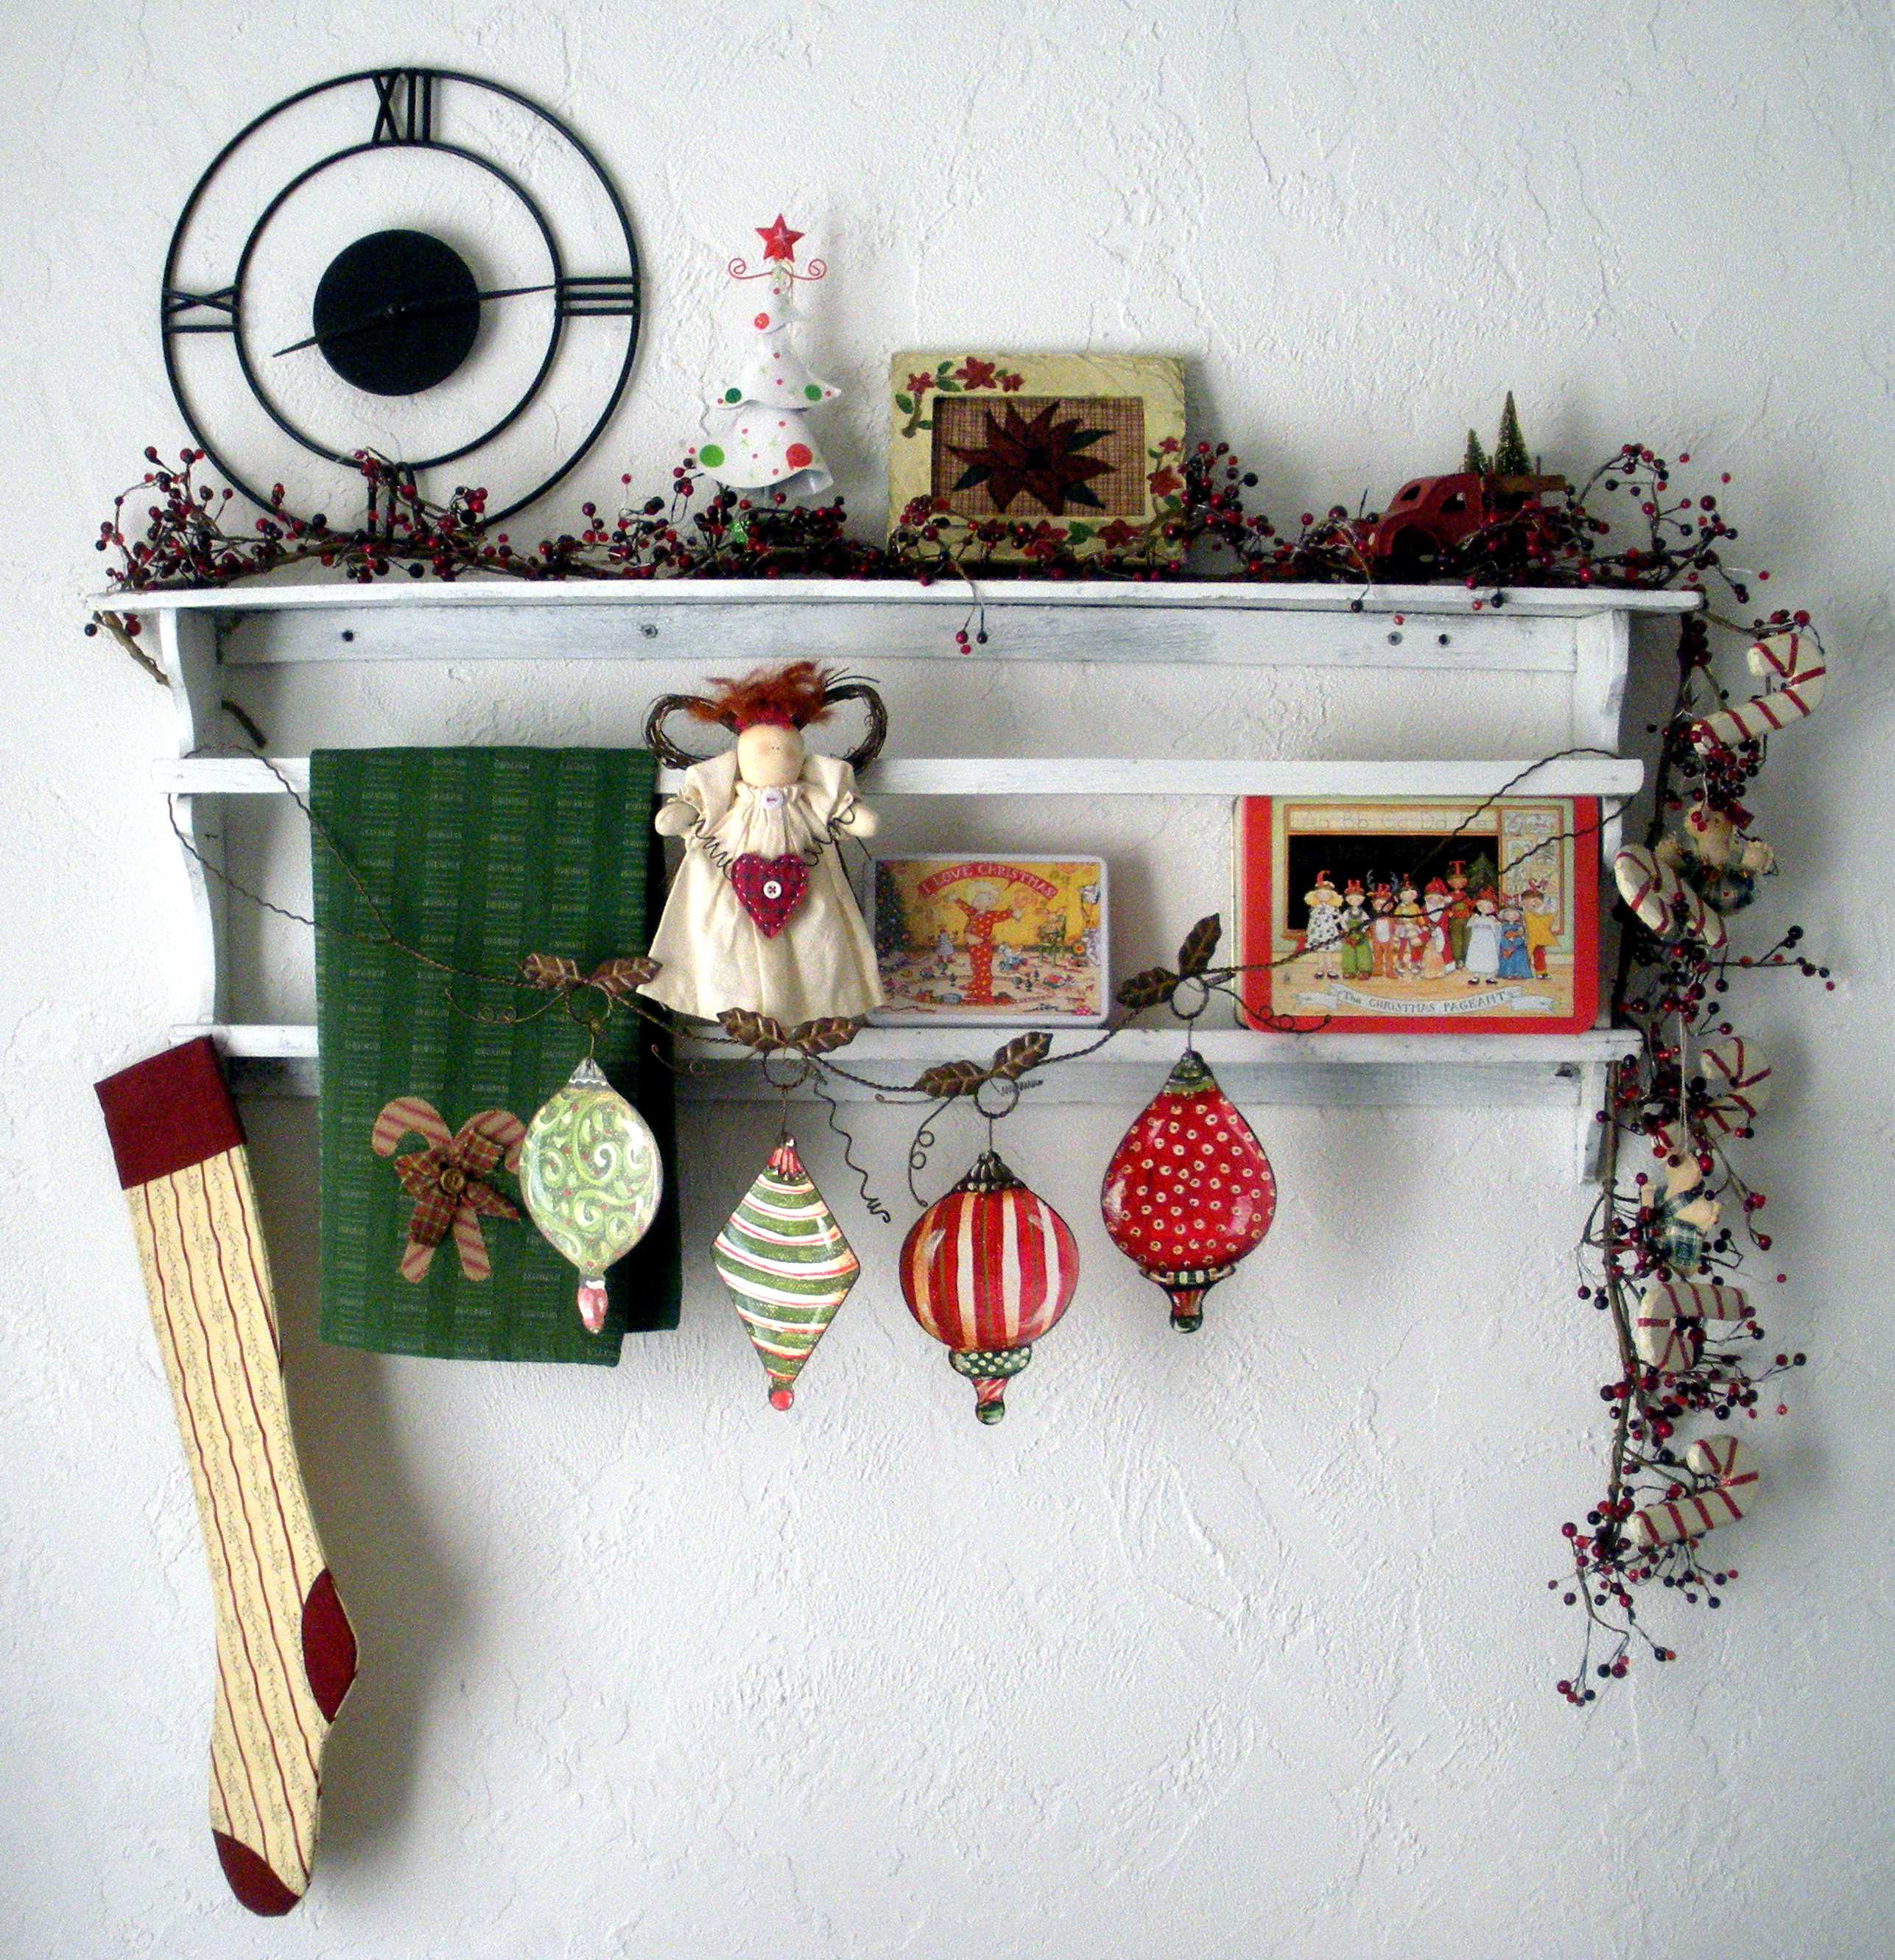 we - Christmas Shelf Decorations